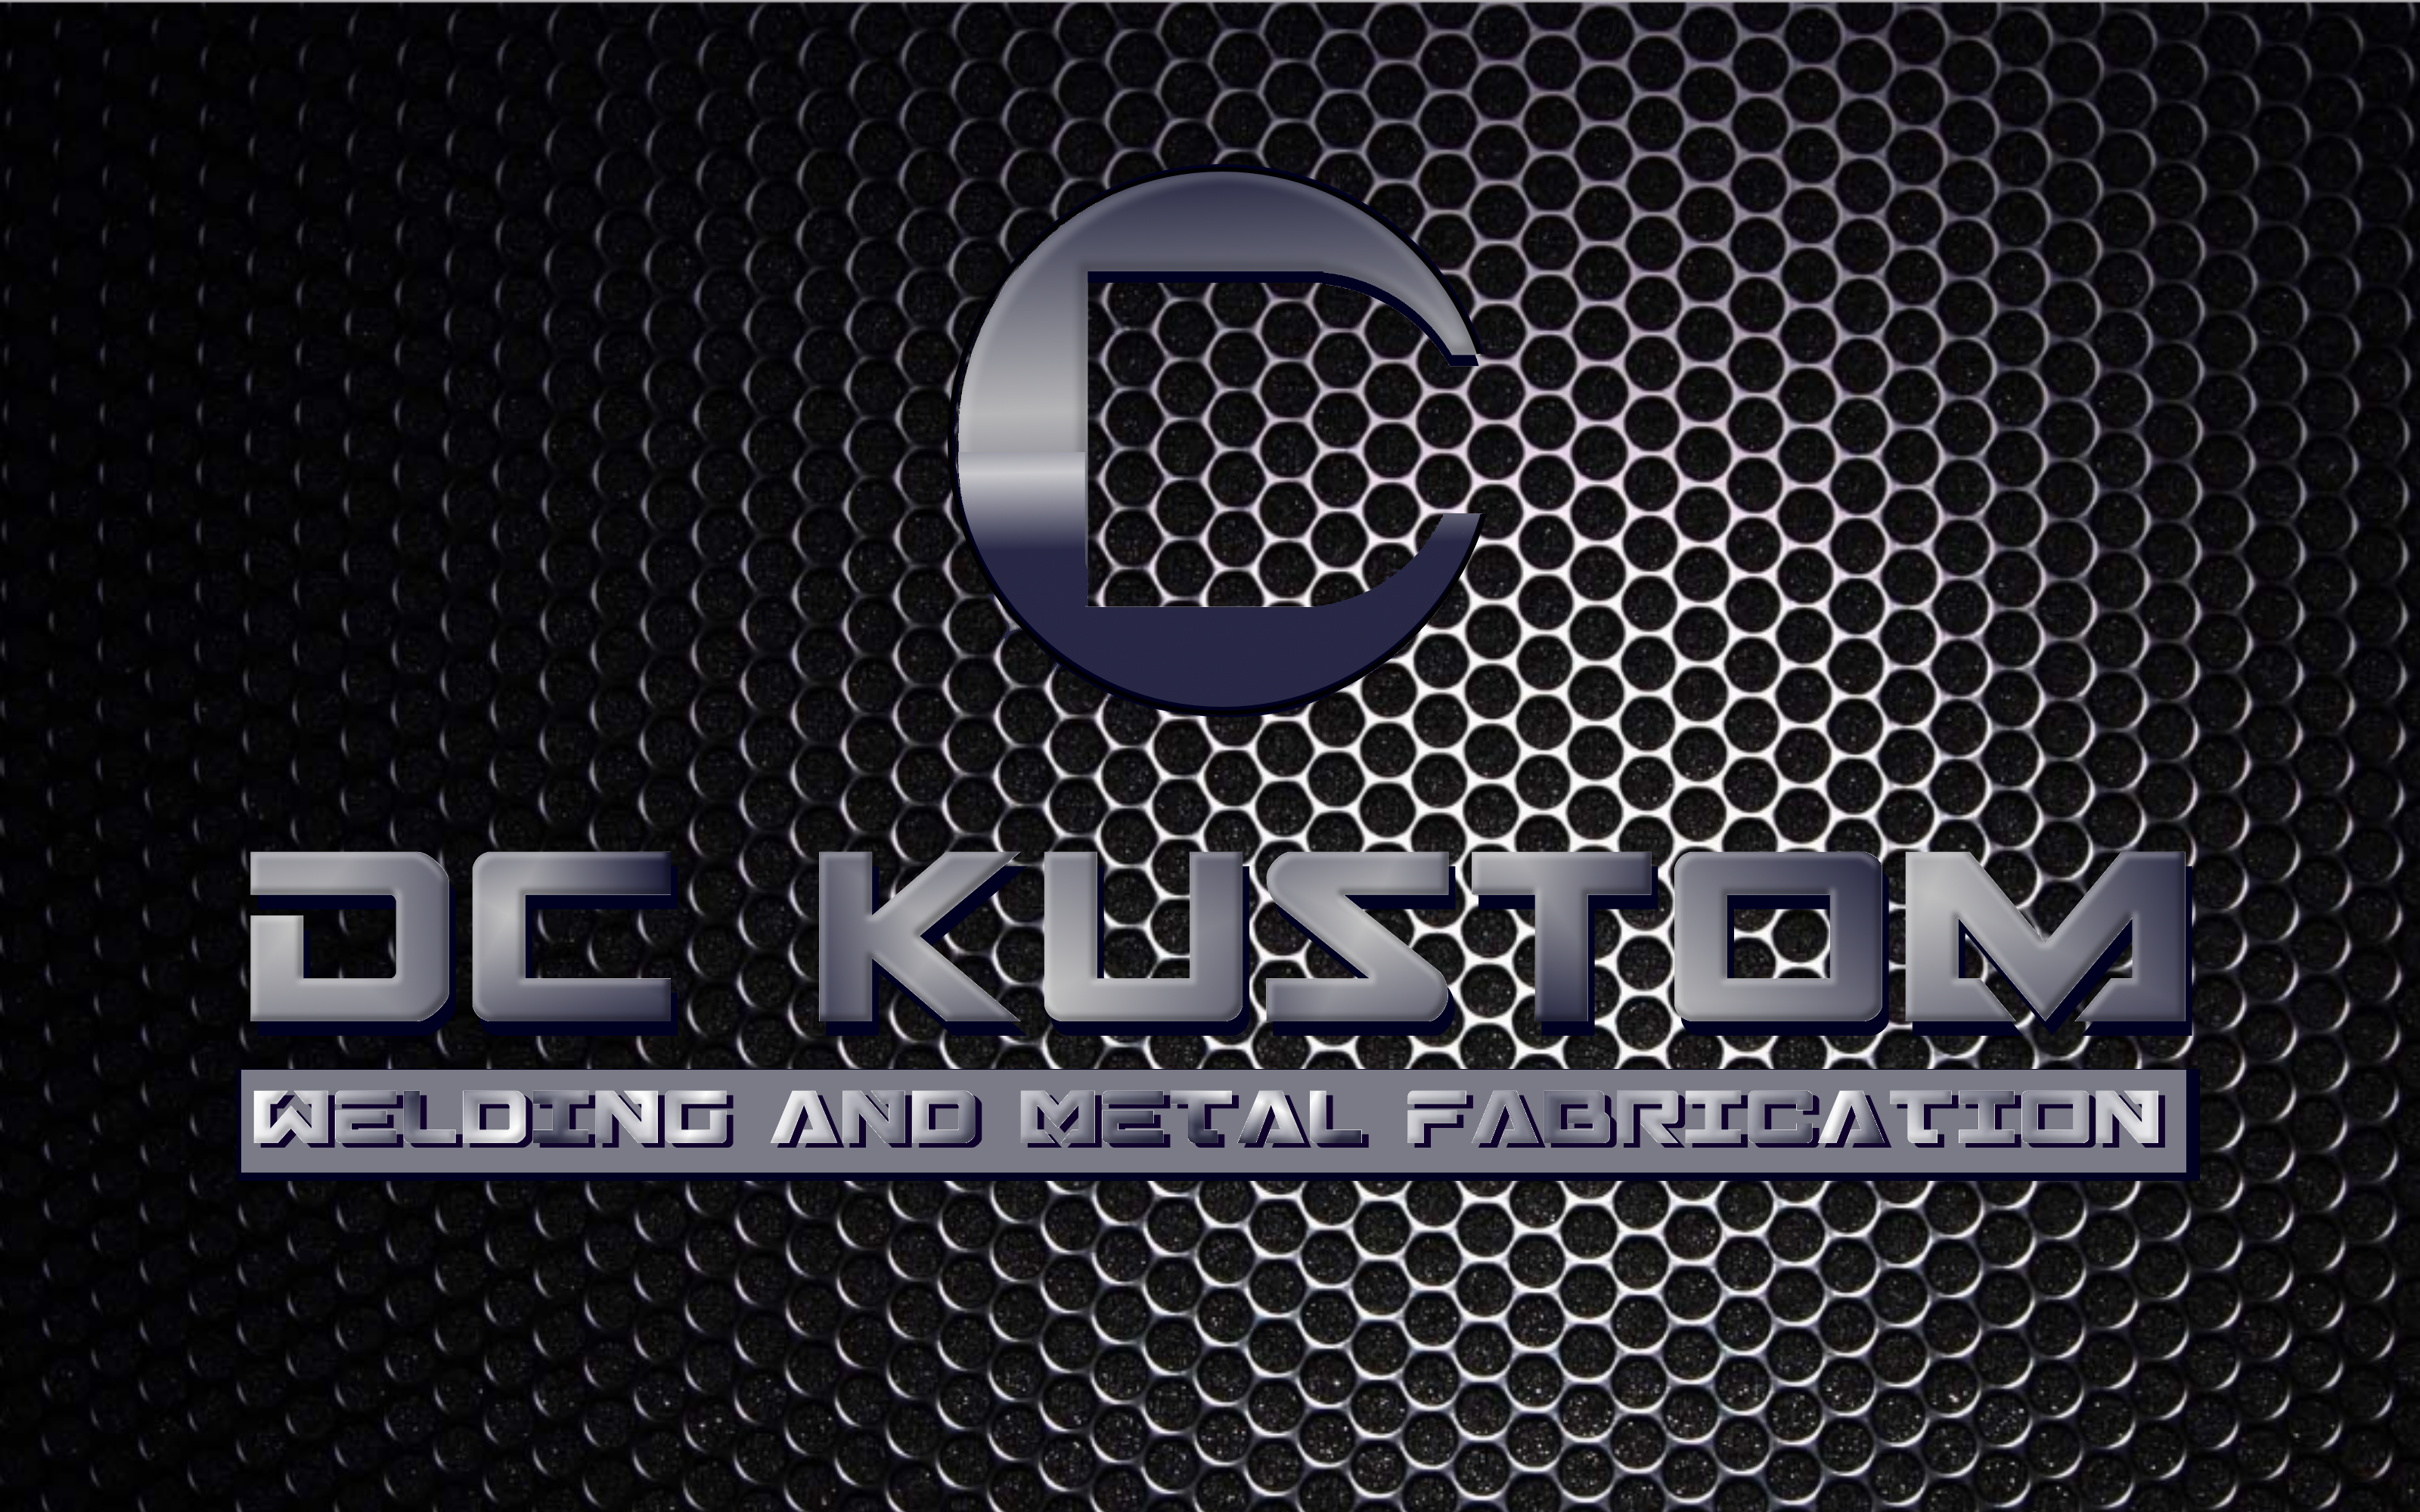 Logo Design by Roberto Bassi - Entry No. 76 in the Logo Design Contest Imaginative Logo Design for DC KUSTOM WELDING & METAL FABRICATION.